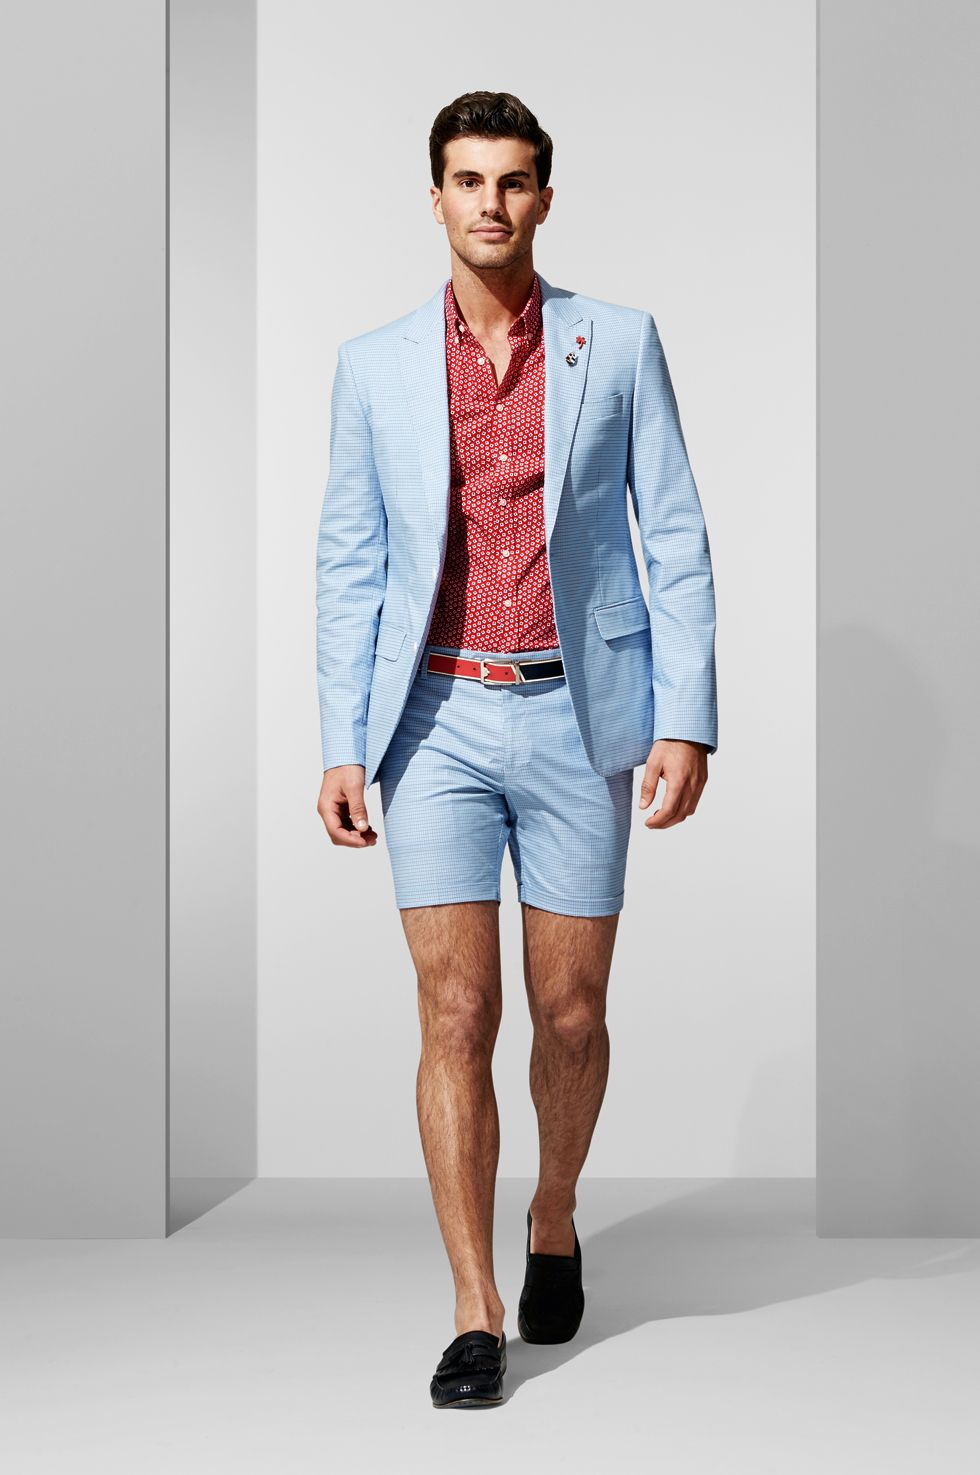 The blue check blazer and short shop the look at libre